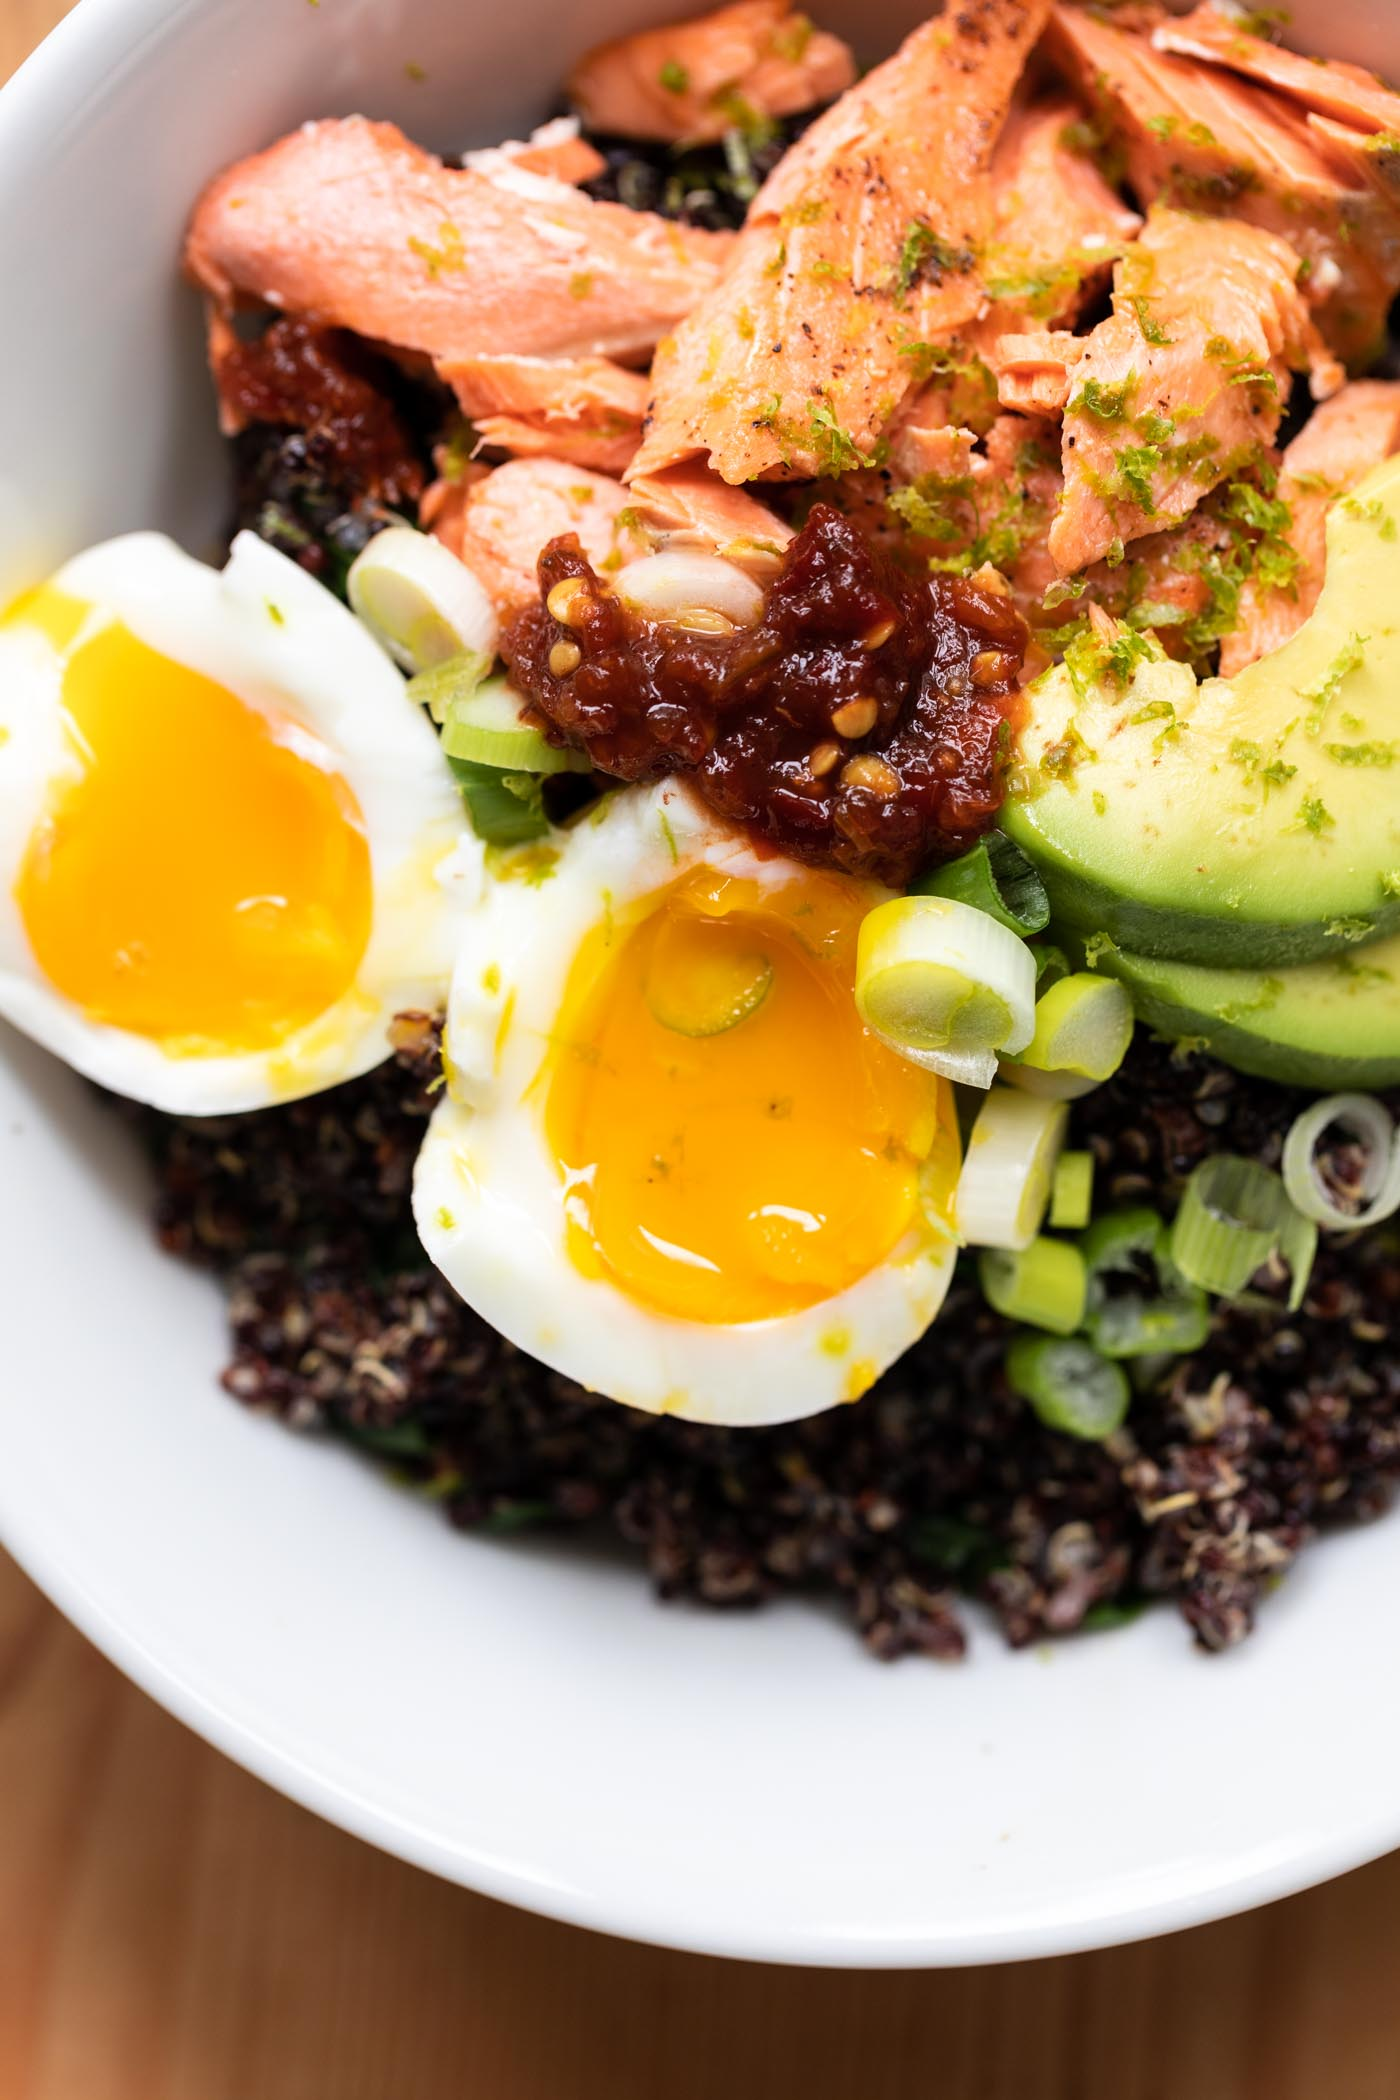 Salmon bowl filled with quinoa, avocado, and sliced open egg all on wood surface